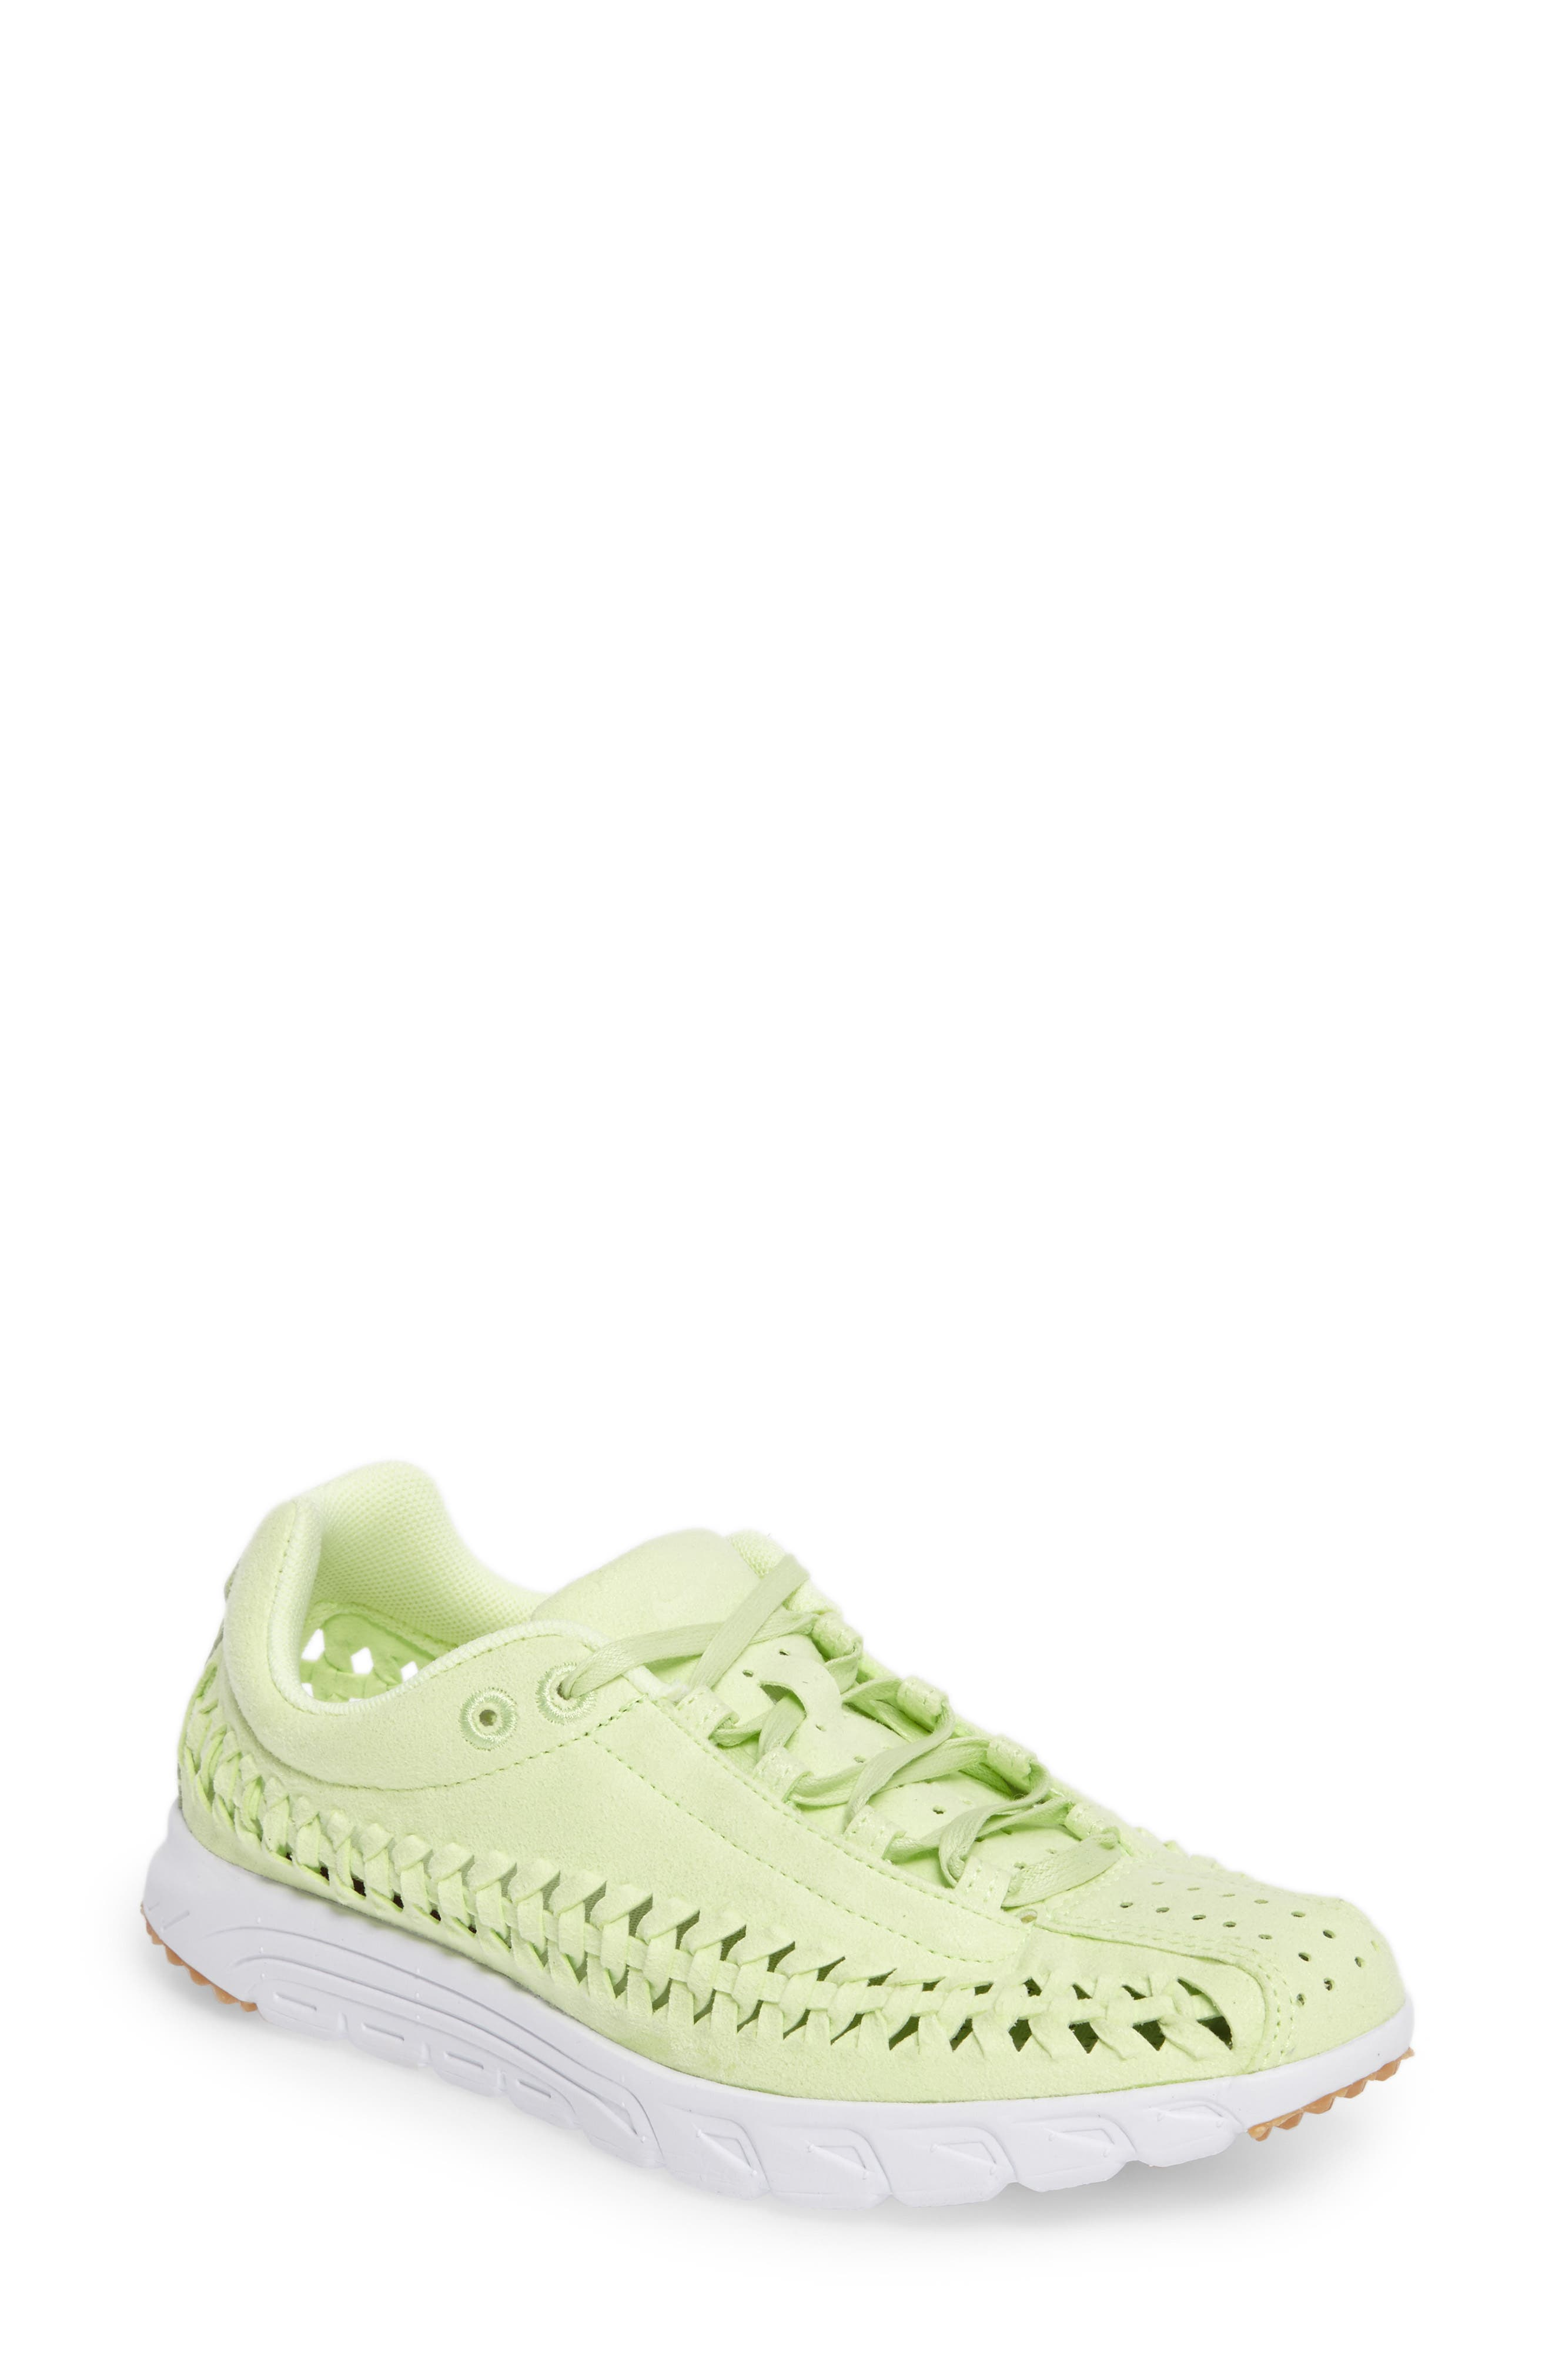 Mayfly Woven QS Sneaker,                         Main,                         color, Liquid Lime/ Liquid Lime